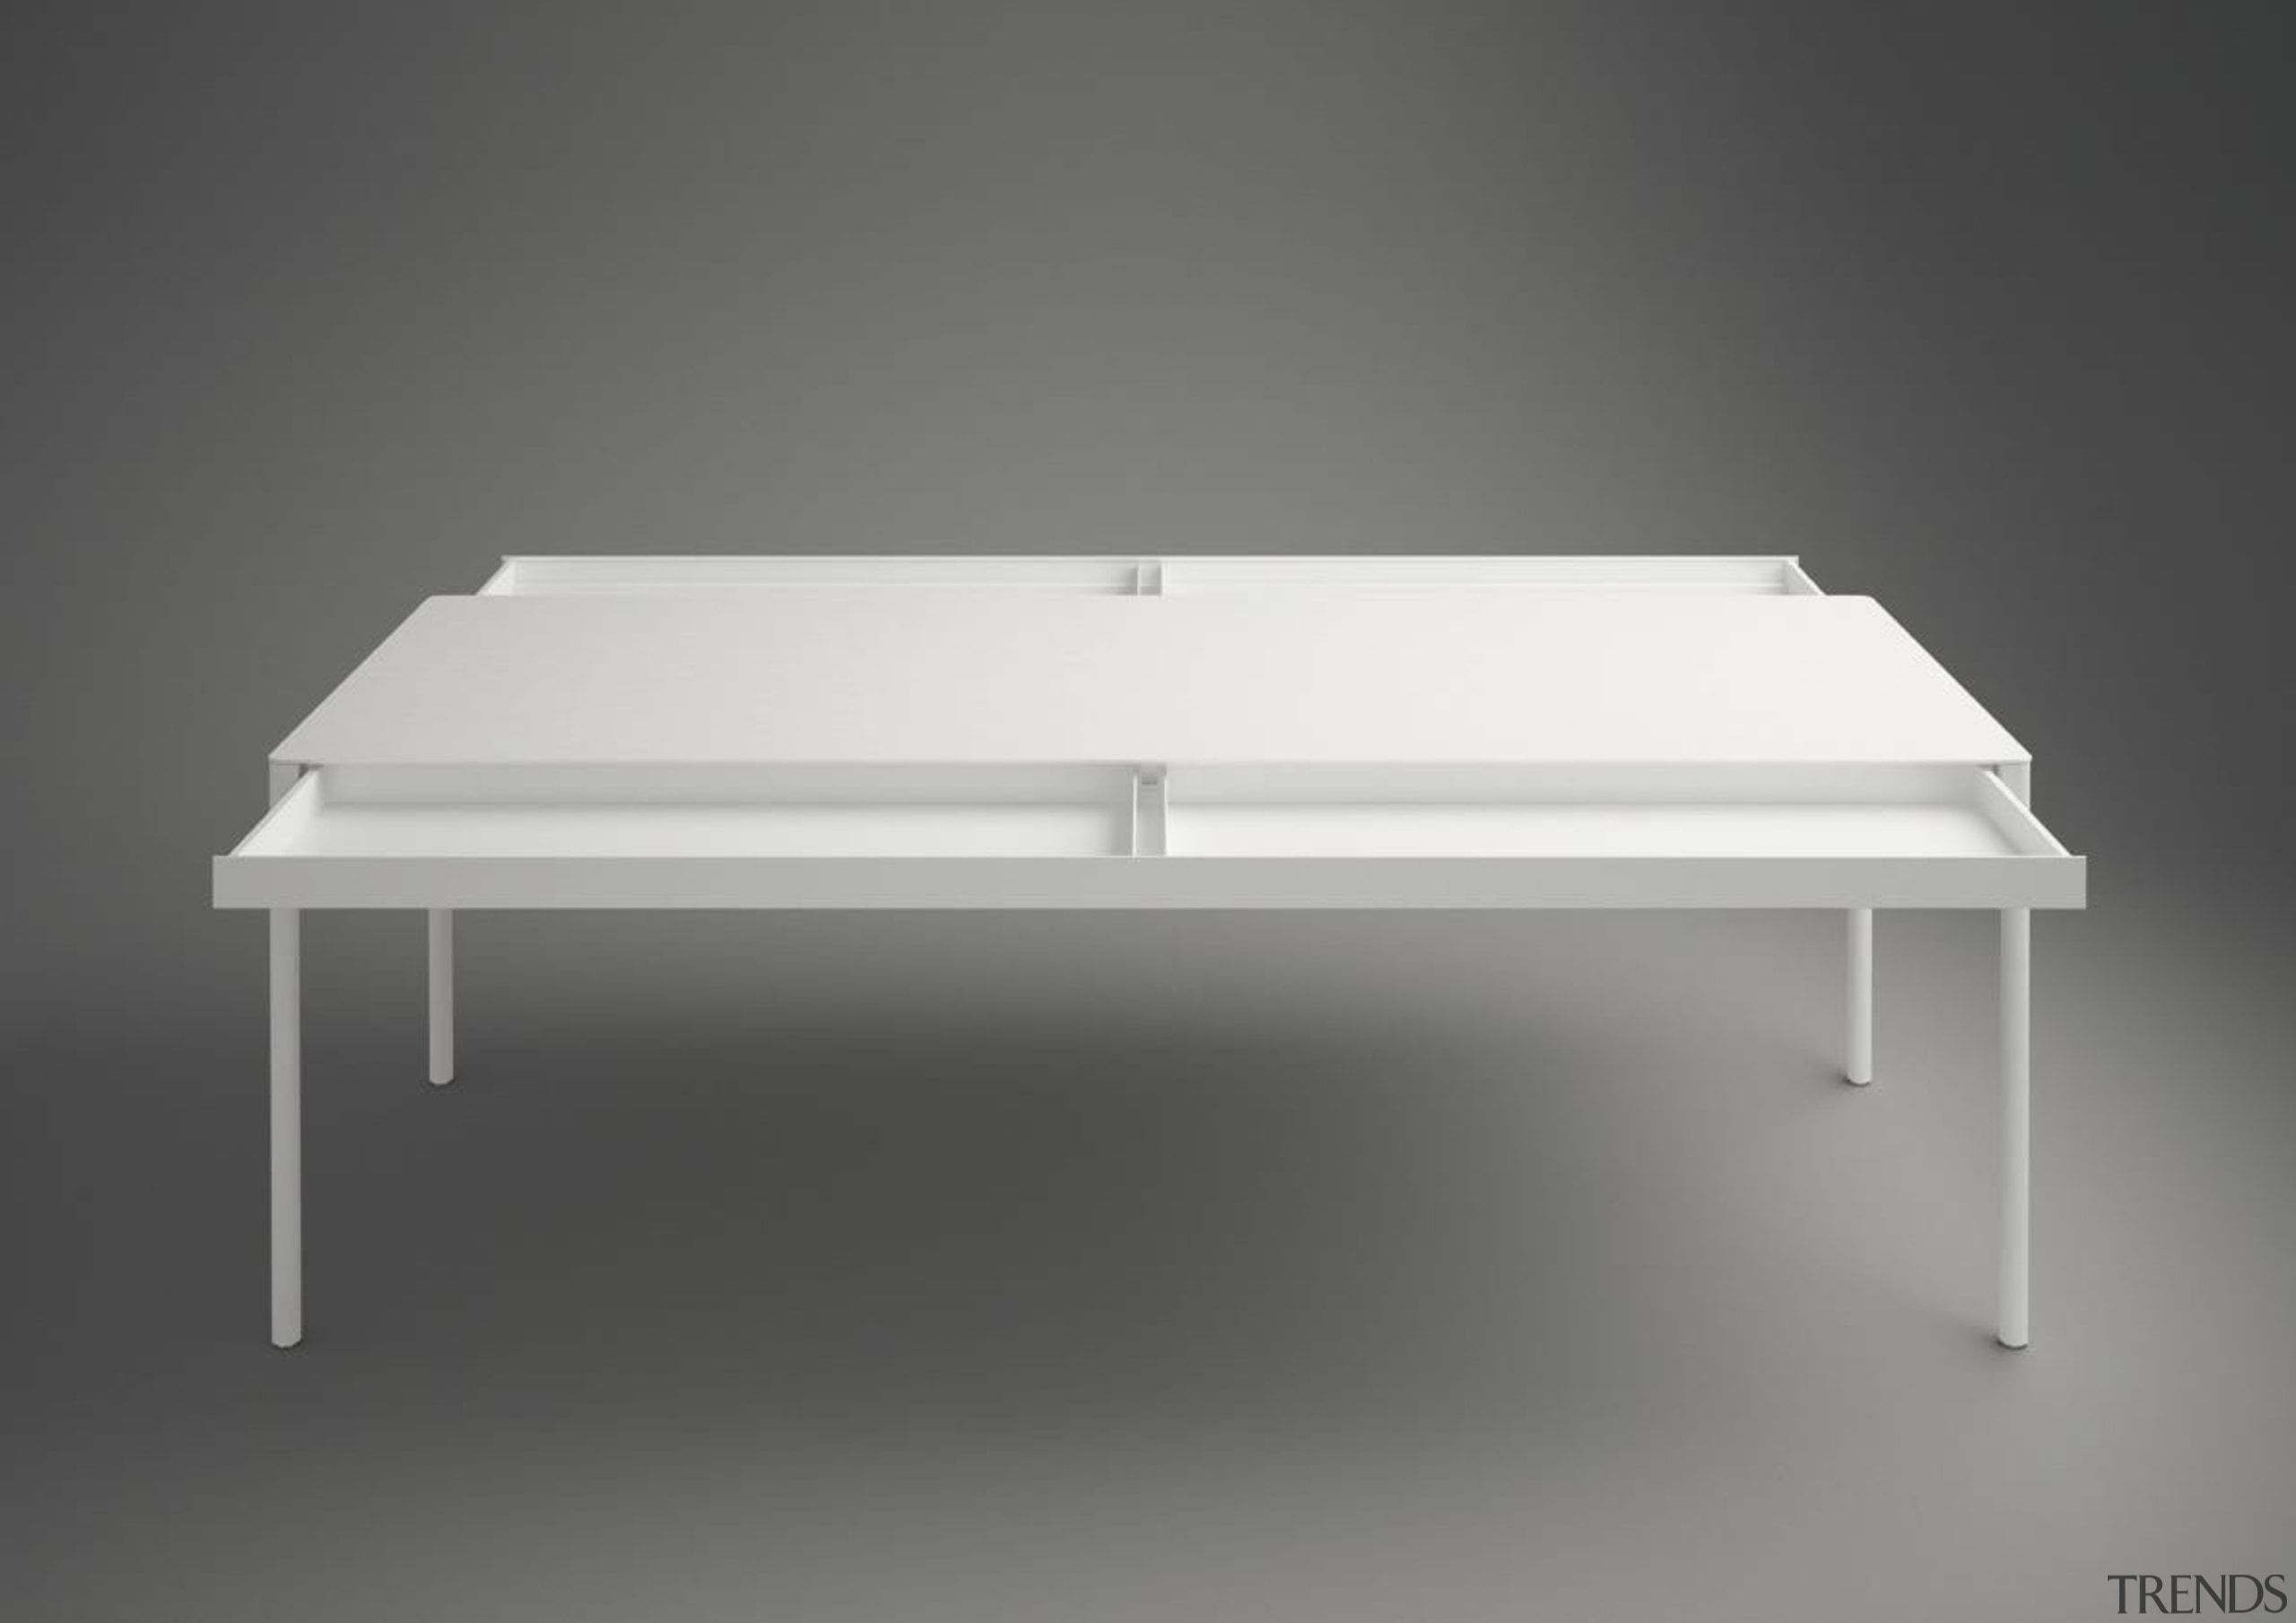 This year's International Furniture Fair Milan, featured many angle, coffee table, furniture, line, product, table, gray